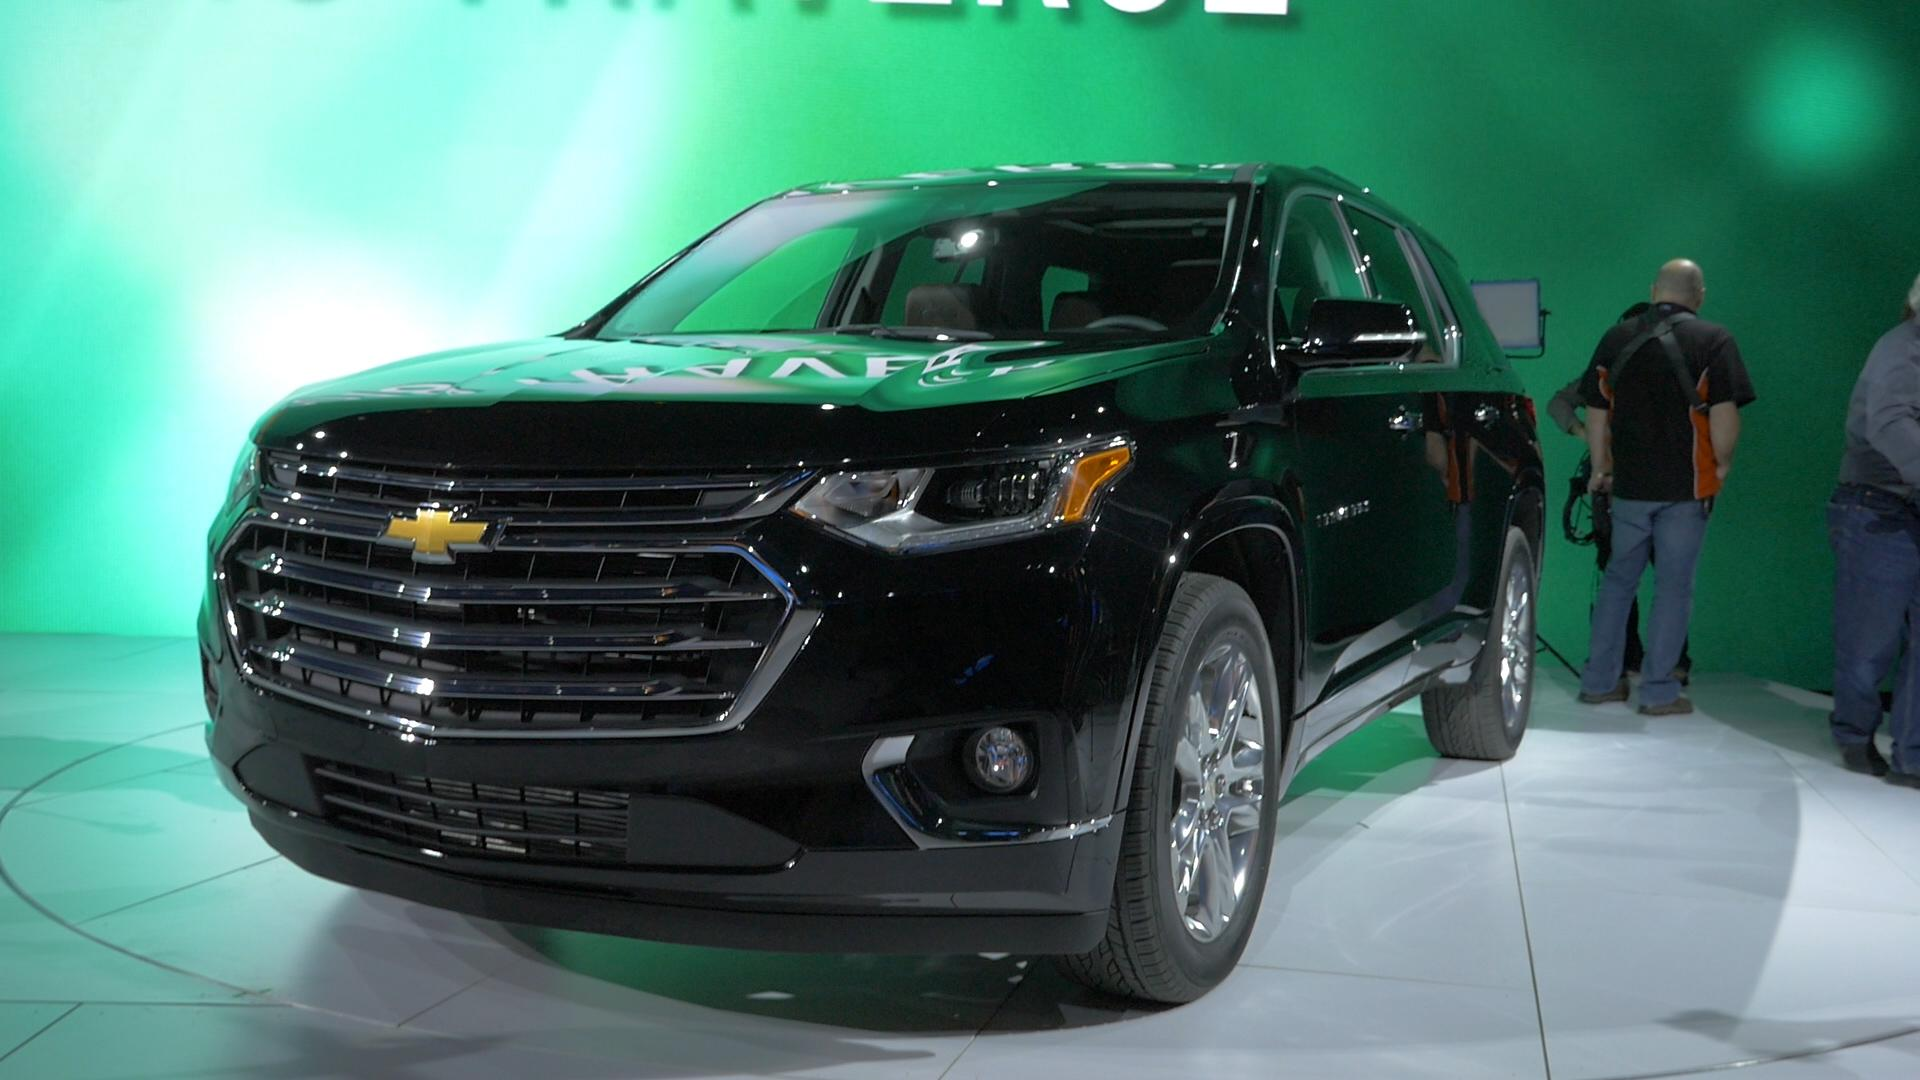 Spy photos of new Chevy midsize SUV, possibly called Blazer | Autoblog